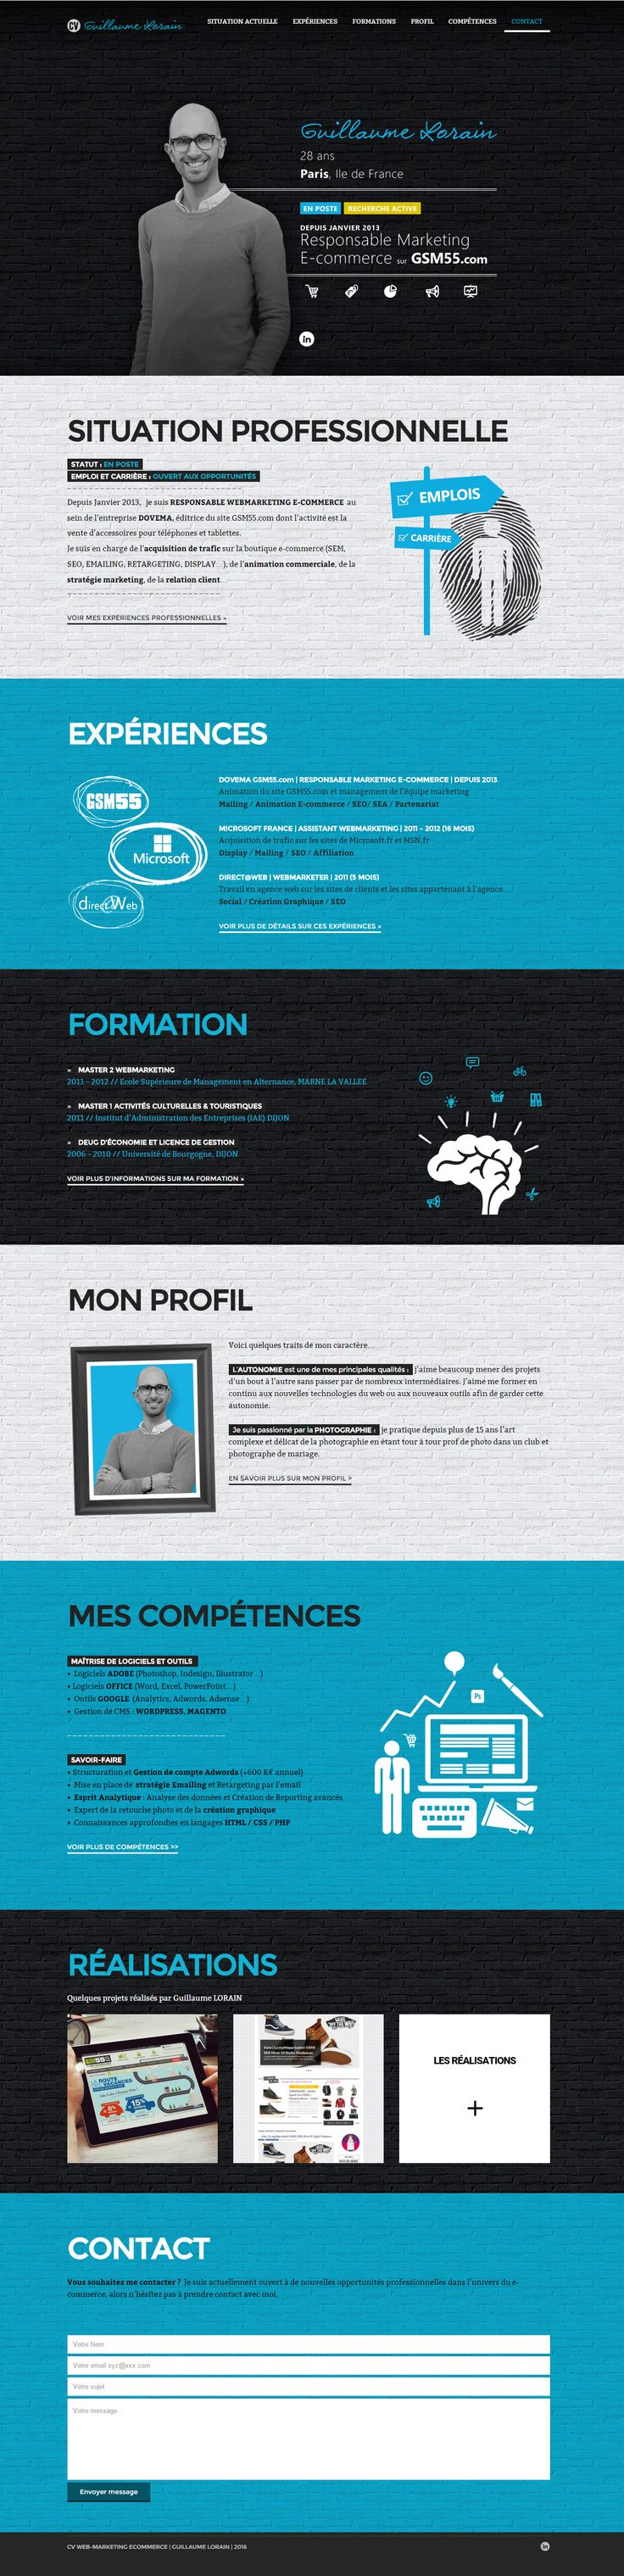 Resume Site cellcv personal portfolio resume site Cv Webmarketing Guillaume Lorain Site Cv Cratif Cv Graphique Marketing Resume Website E